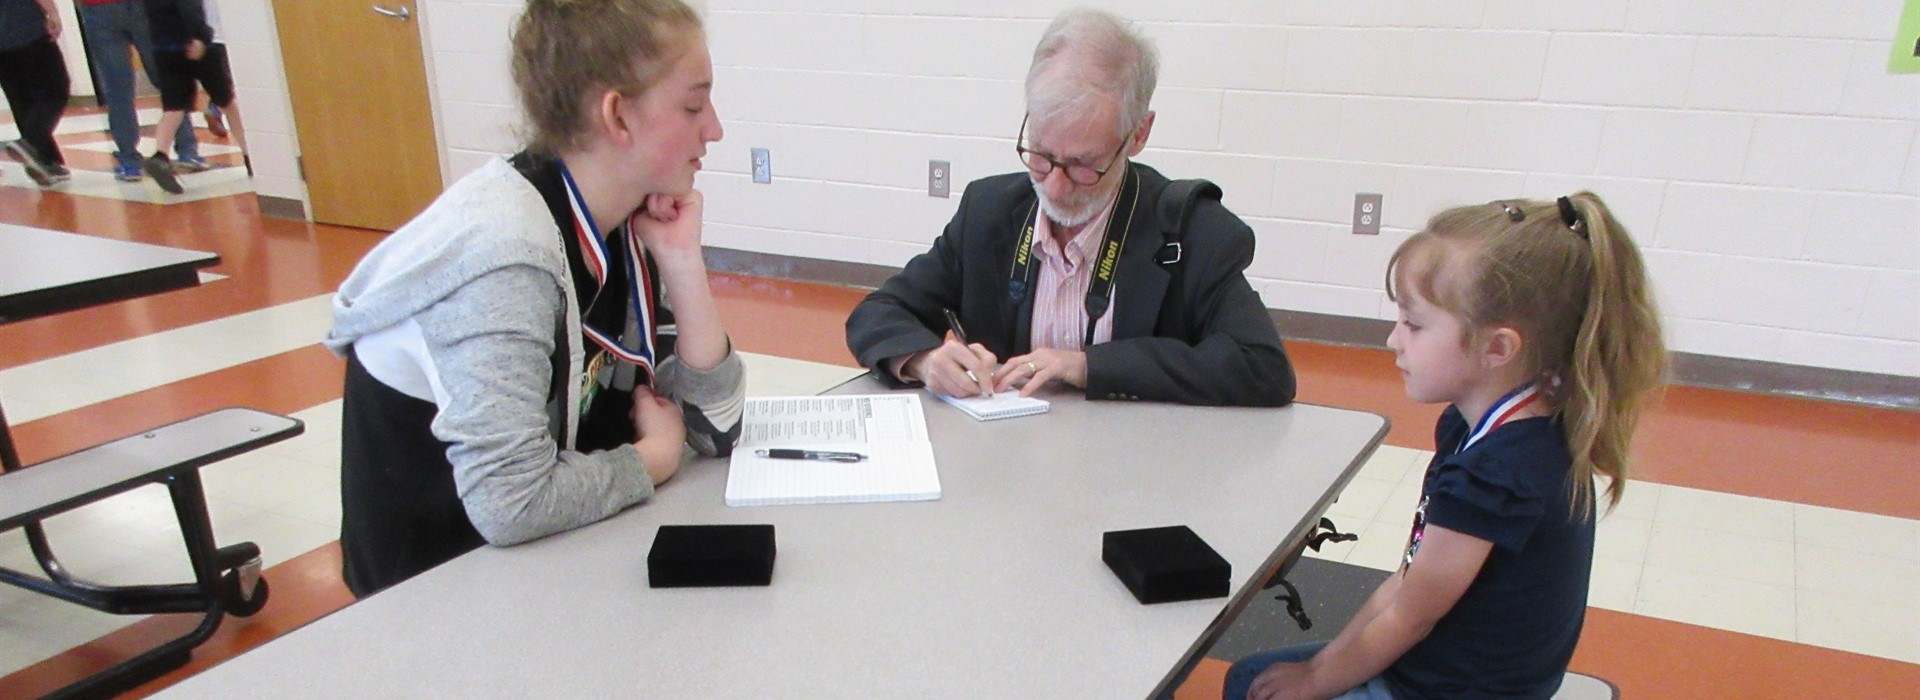 State Handwriting winners being interviewed